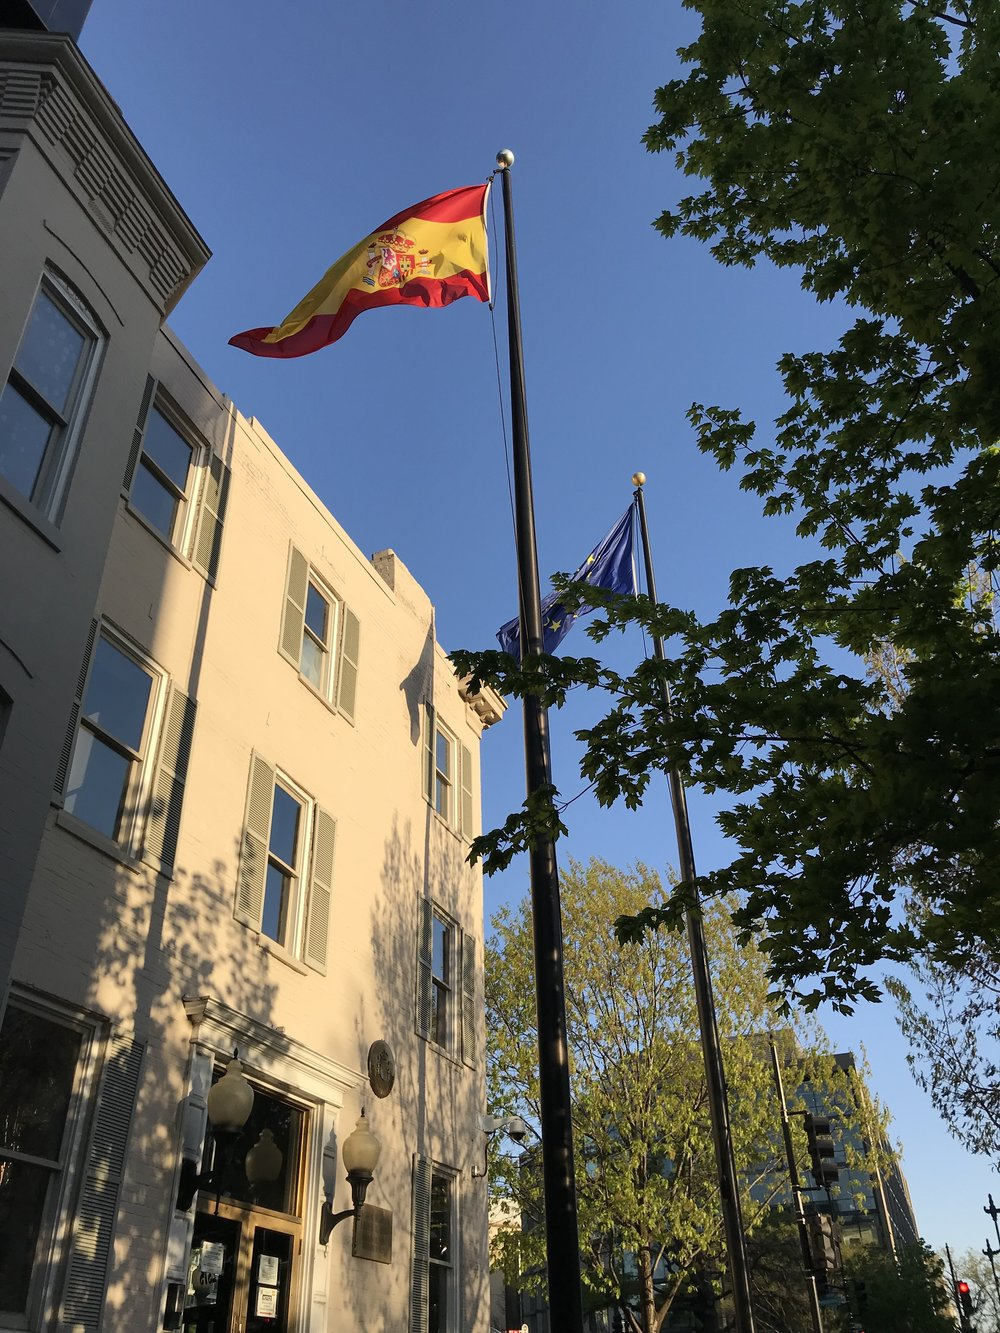 The Embassy of Spain.